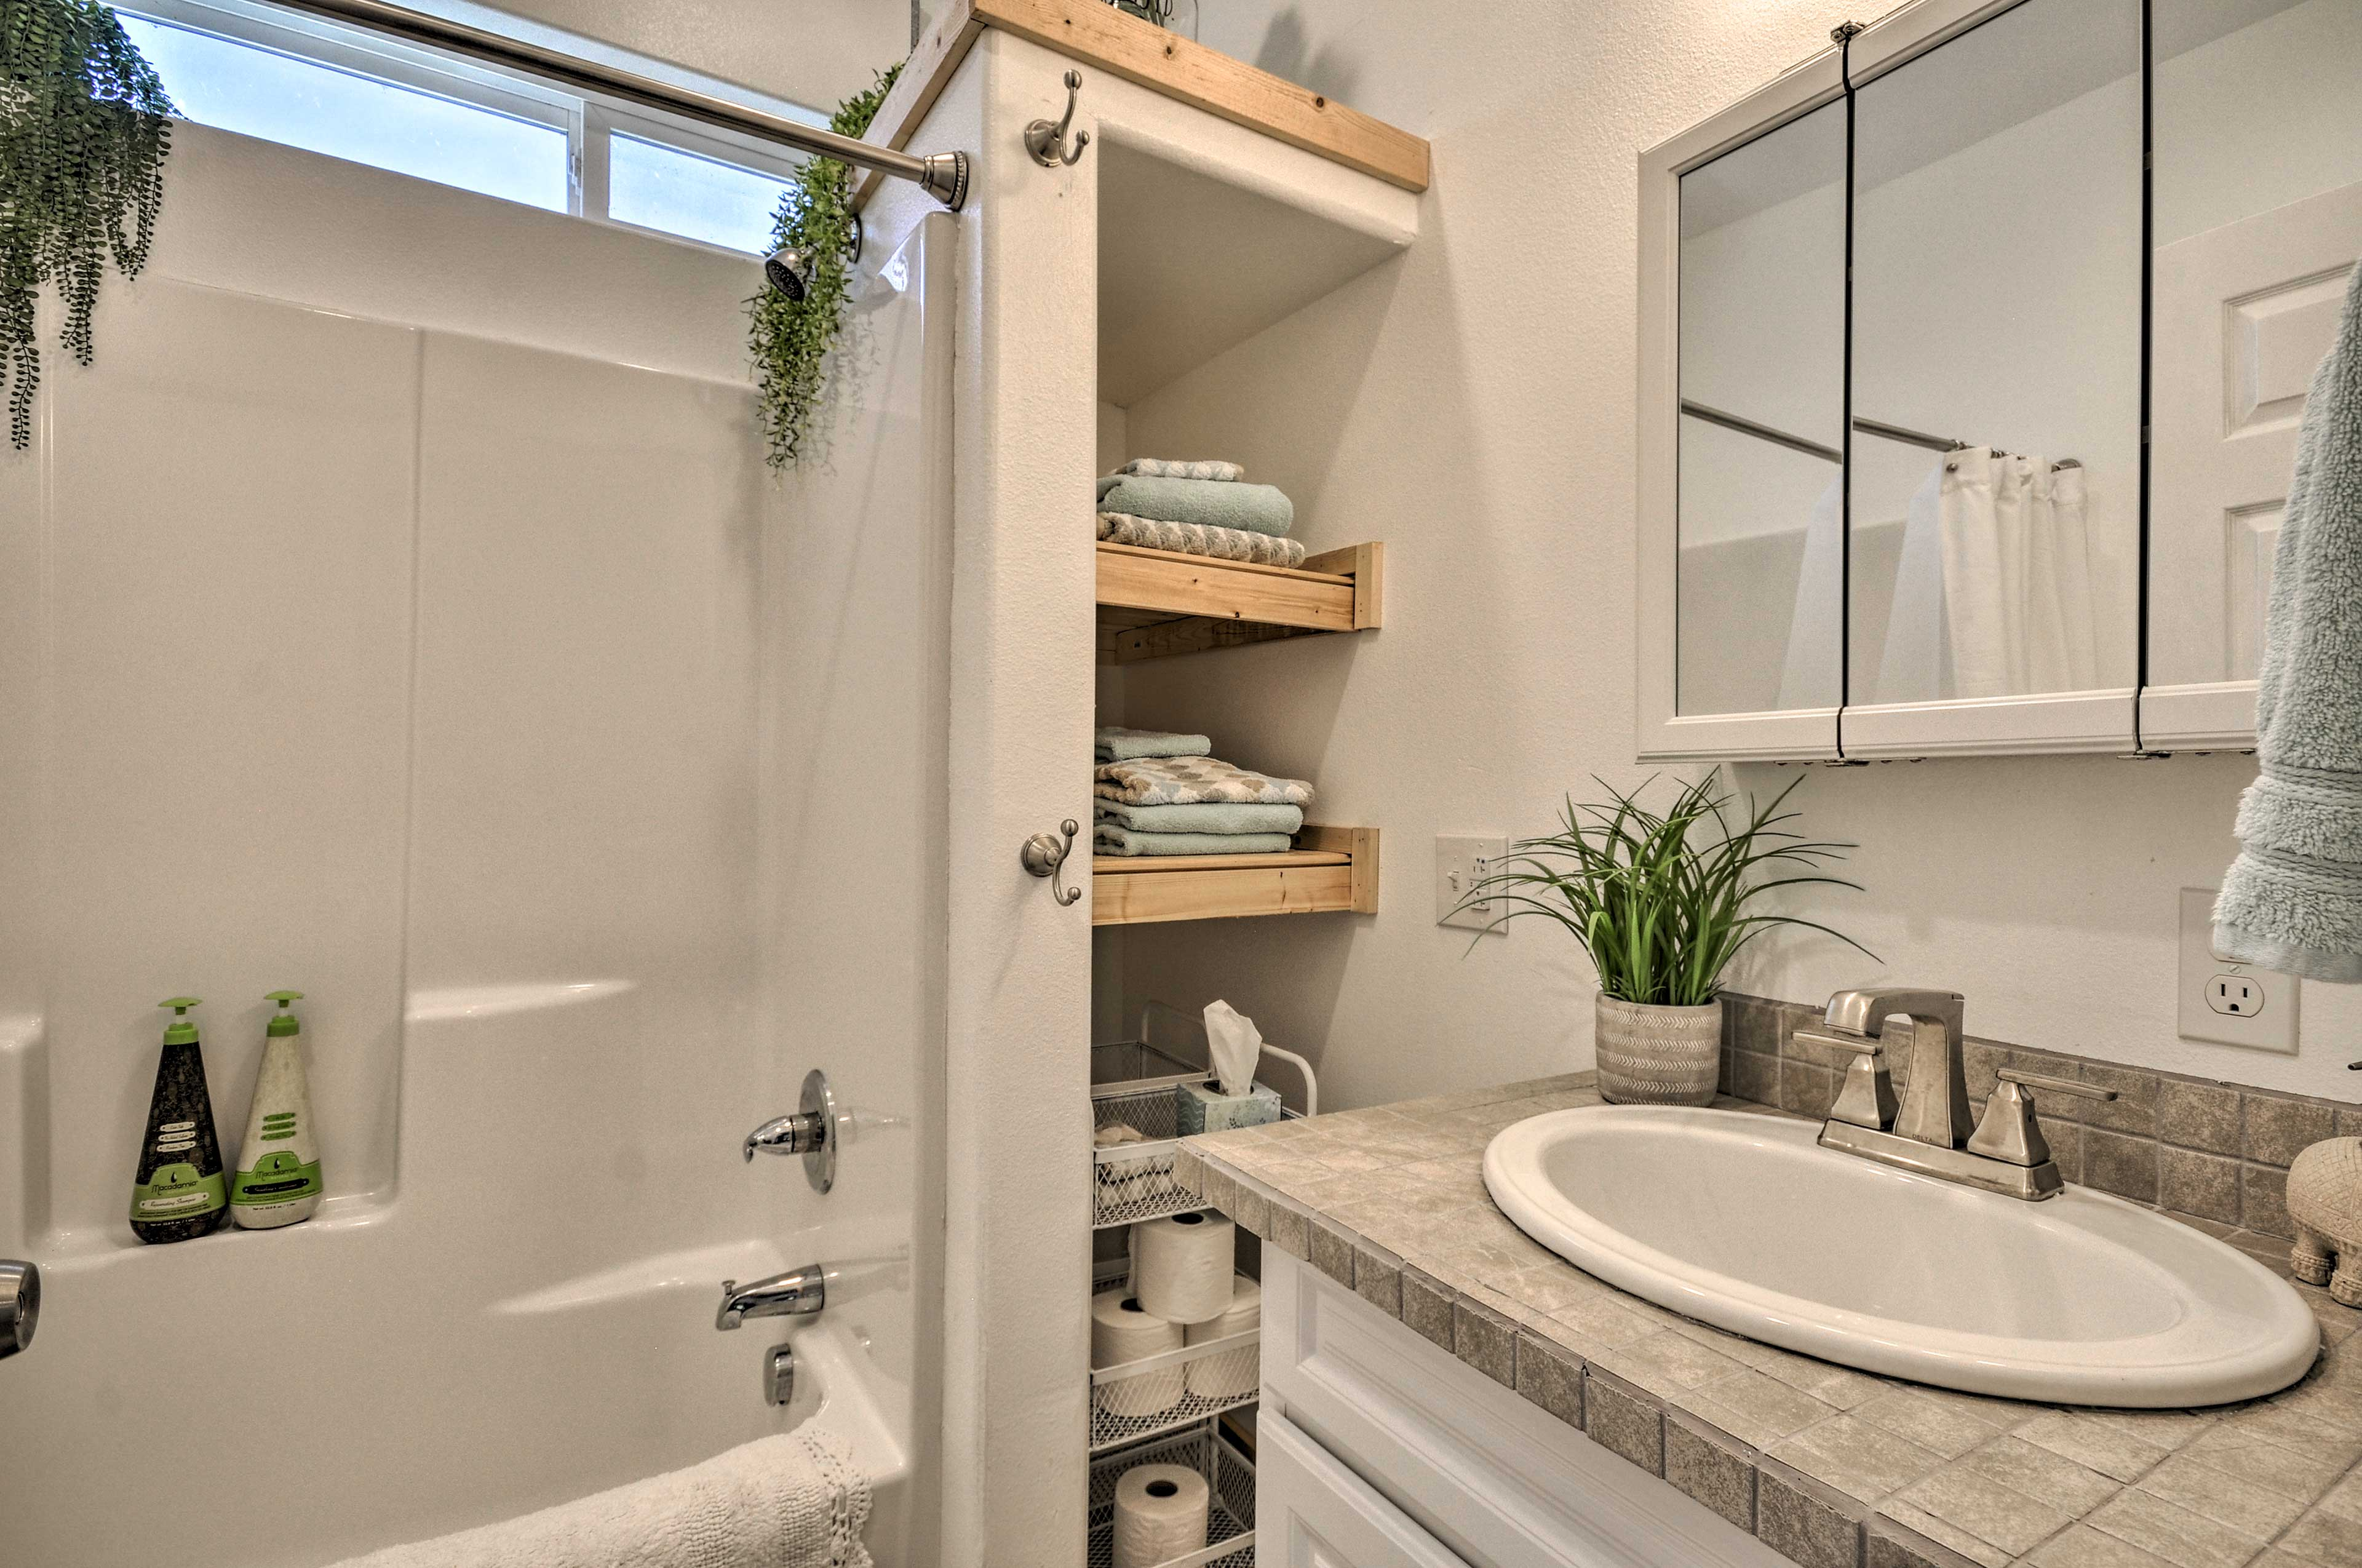 Open up the mirrors to store your toiletries with ease.